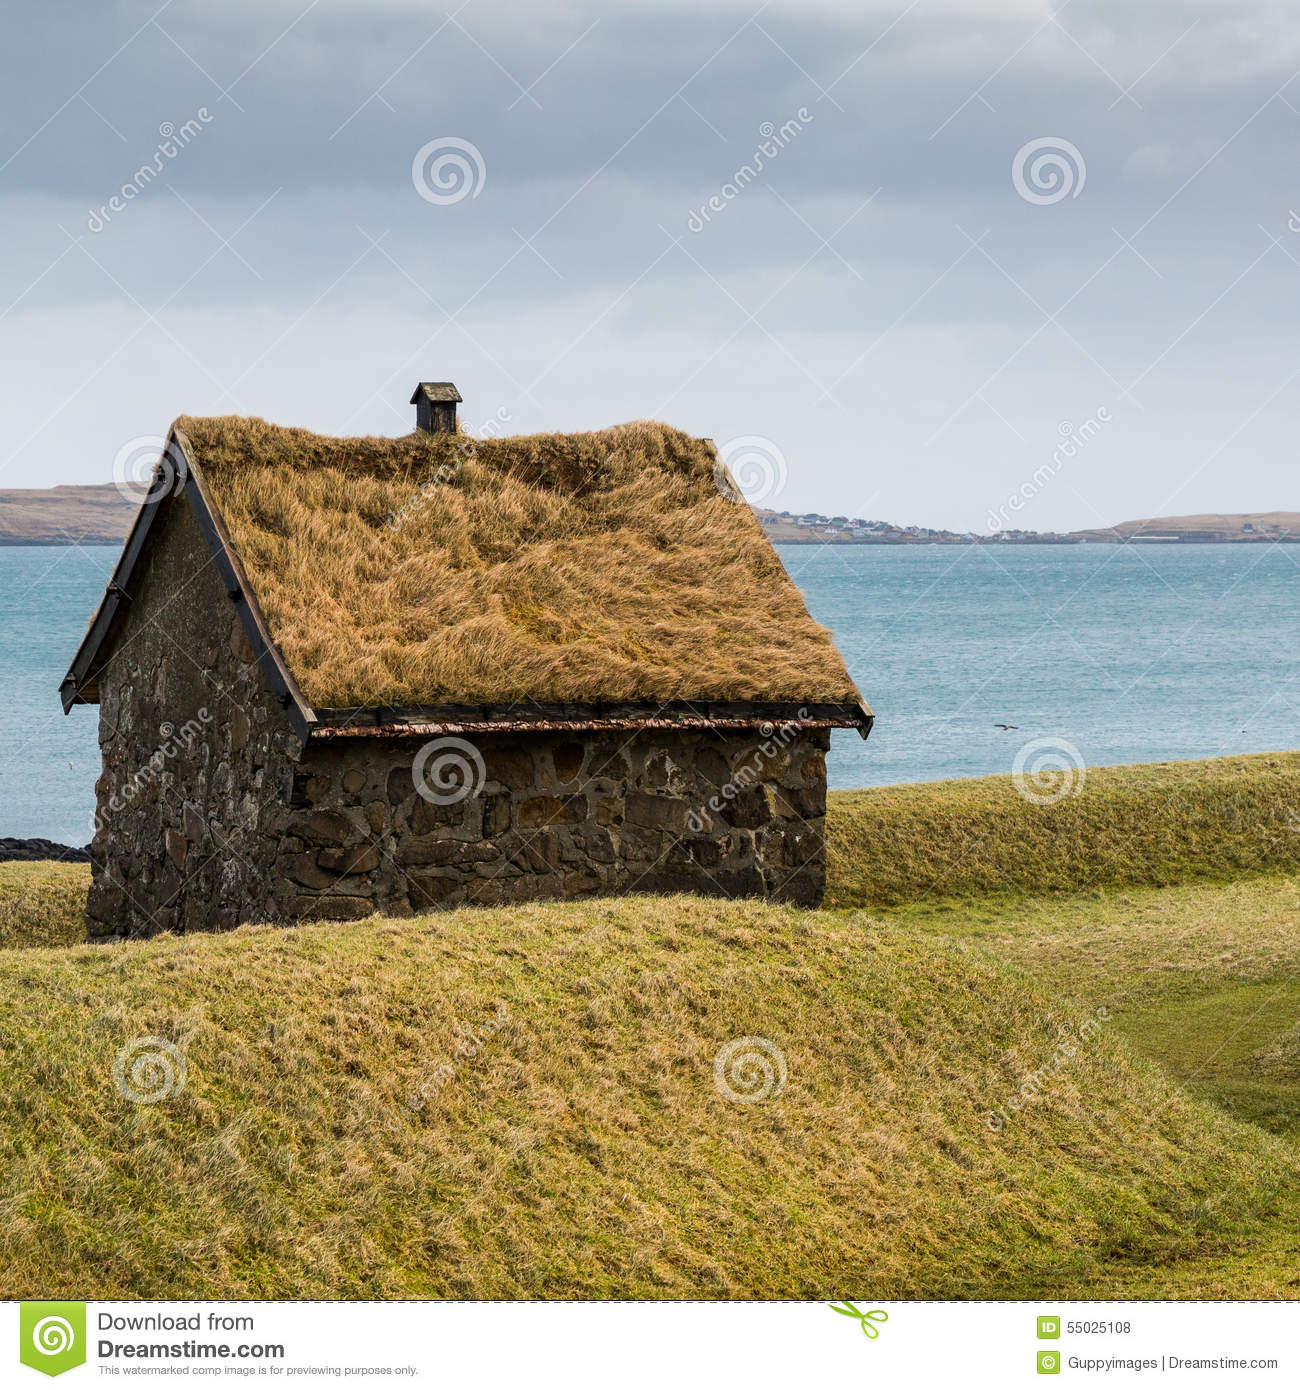 Grass Hut: Traditional Hut With A Green Grass Roof